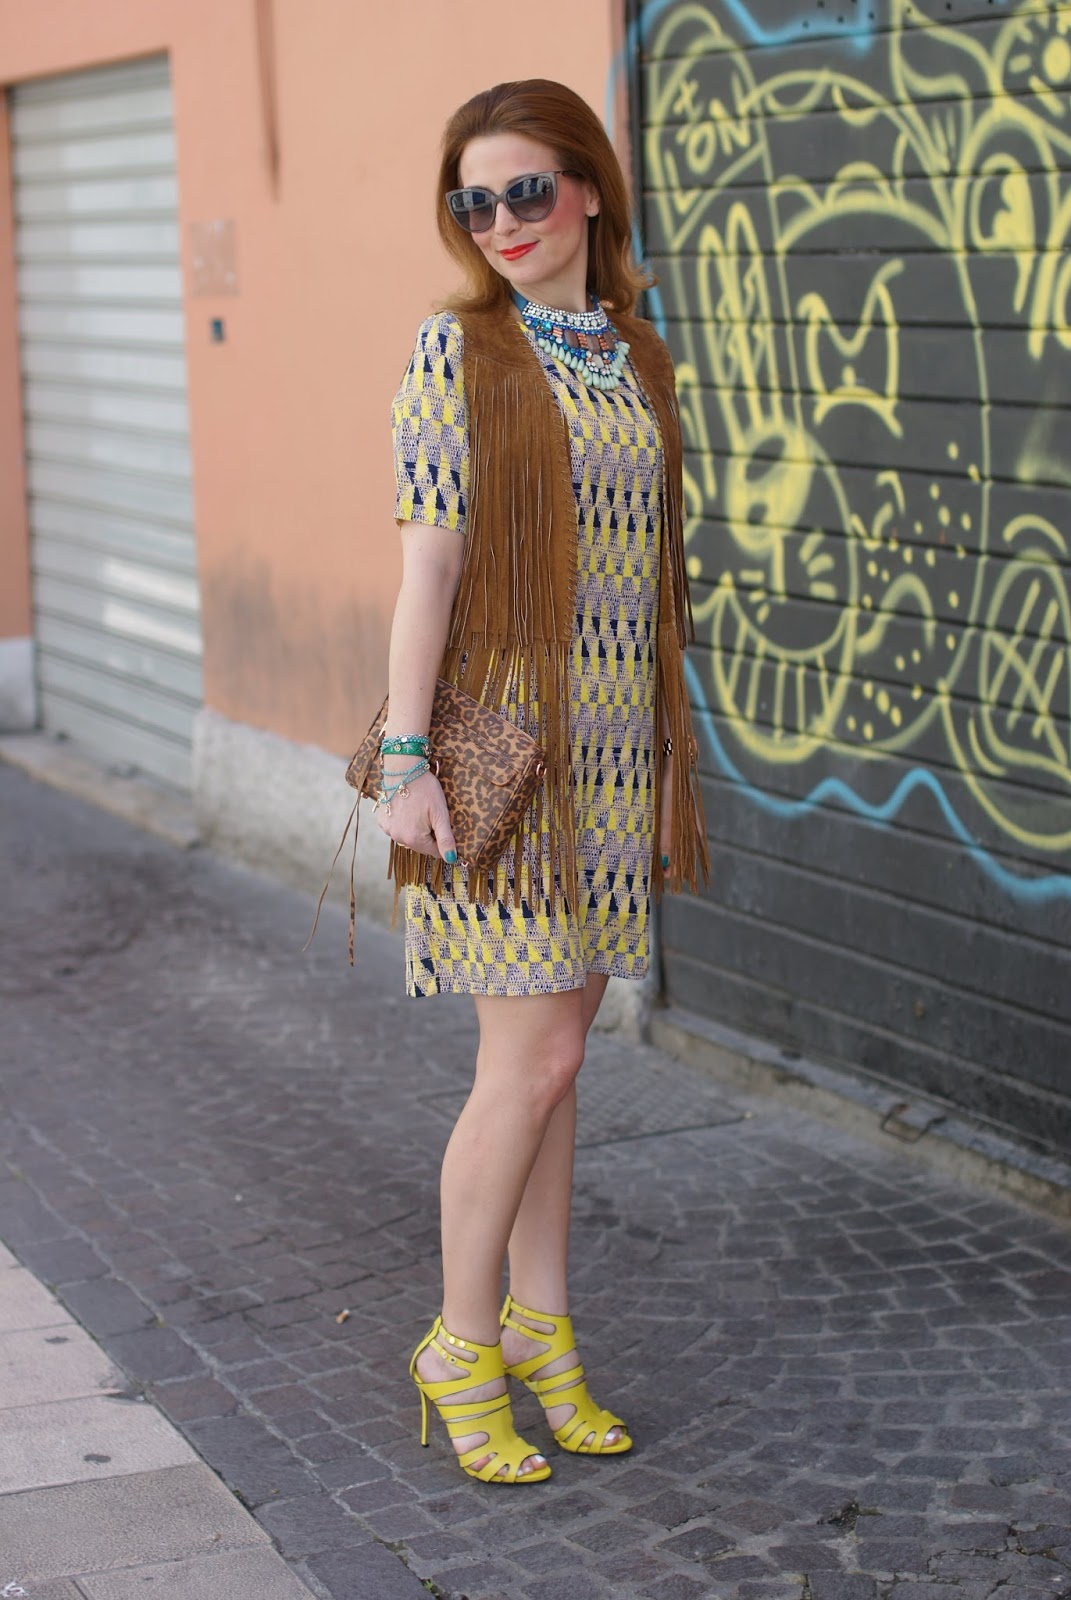 Western chic style, Le Silla yellow heels, Zara fringe vest, Paramita Chibum dress, SimonaB Bijoux necklace, Rebecca Minkoff MAC leopard bag on Fashion and Cookies fashion blog, fashion blogger style